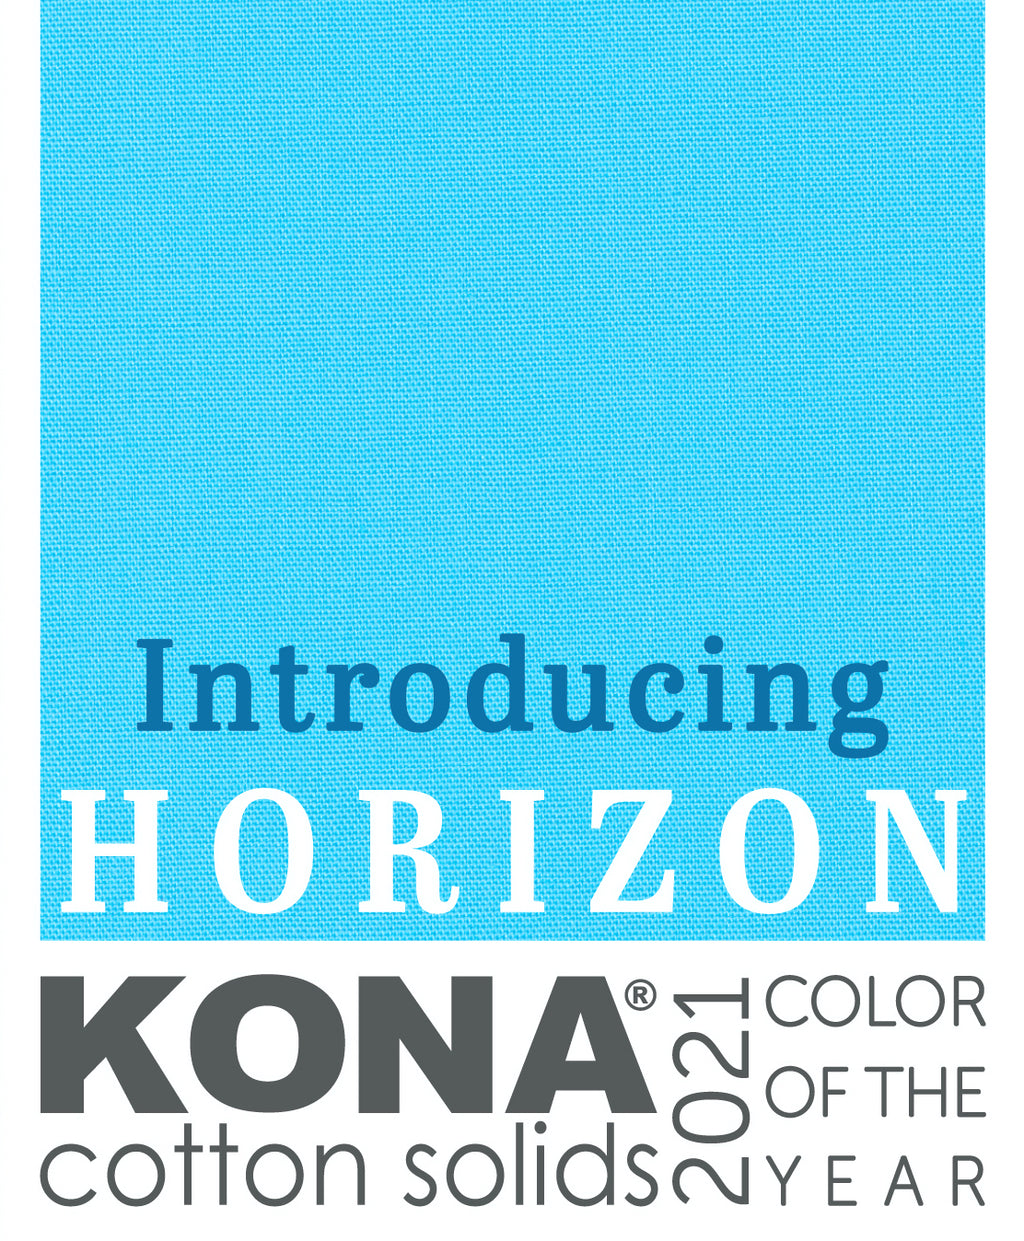 Kona Cotton Solid in Horizon Blue - K001-1914 - Kona Color of the Year 2021